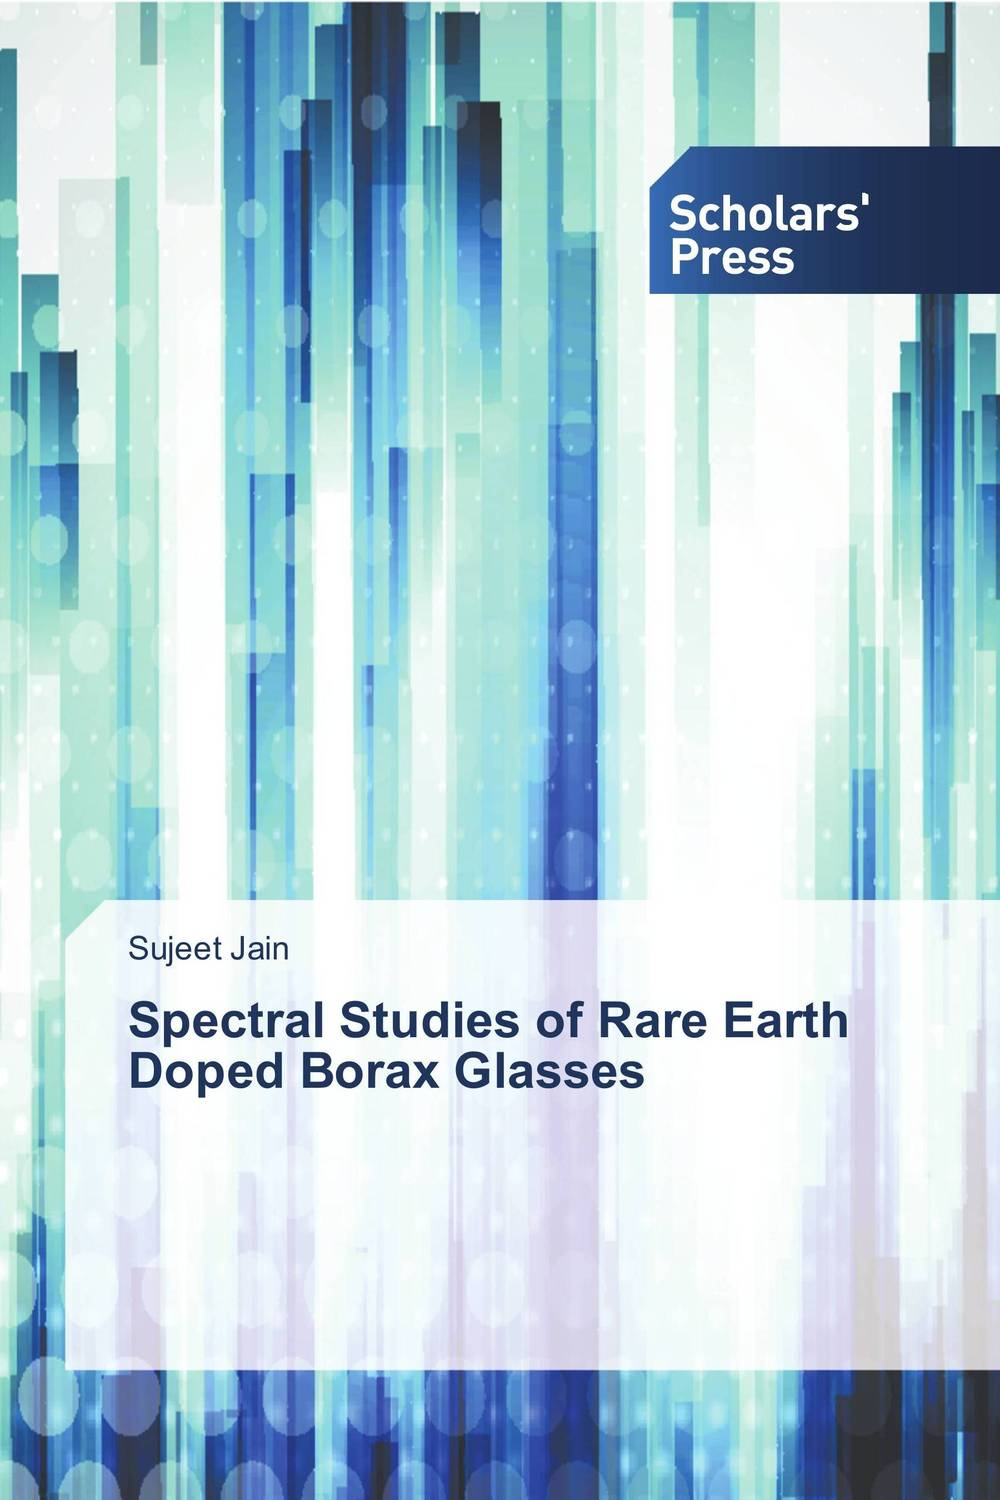 Spectral Studies of Rare Earth Doped Borax Glasses rakesh kumar amrit pal singh and sangeeta obrai computational and solution studies of cu ii ions with podands